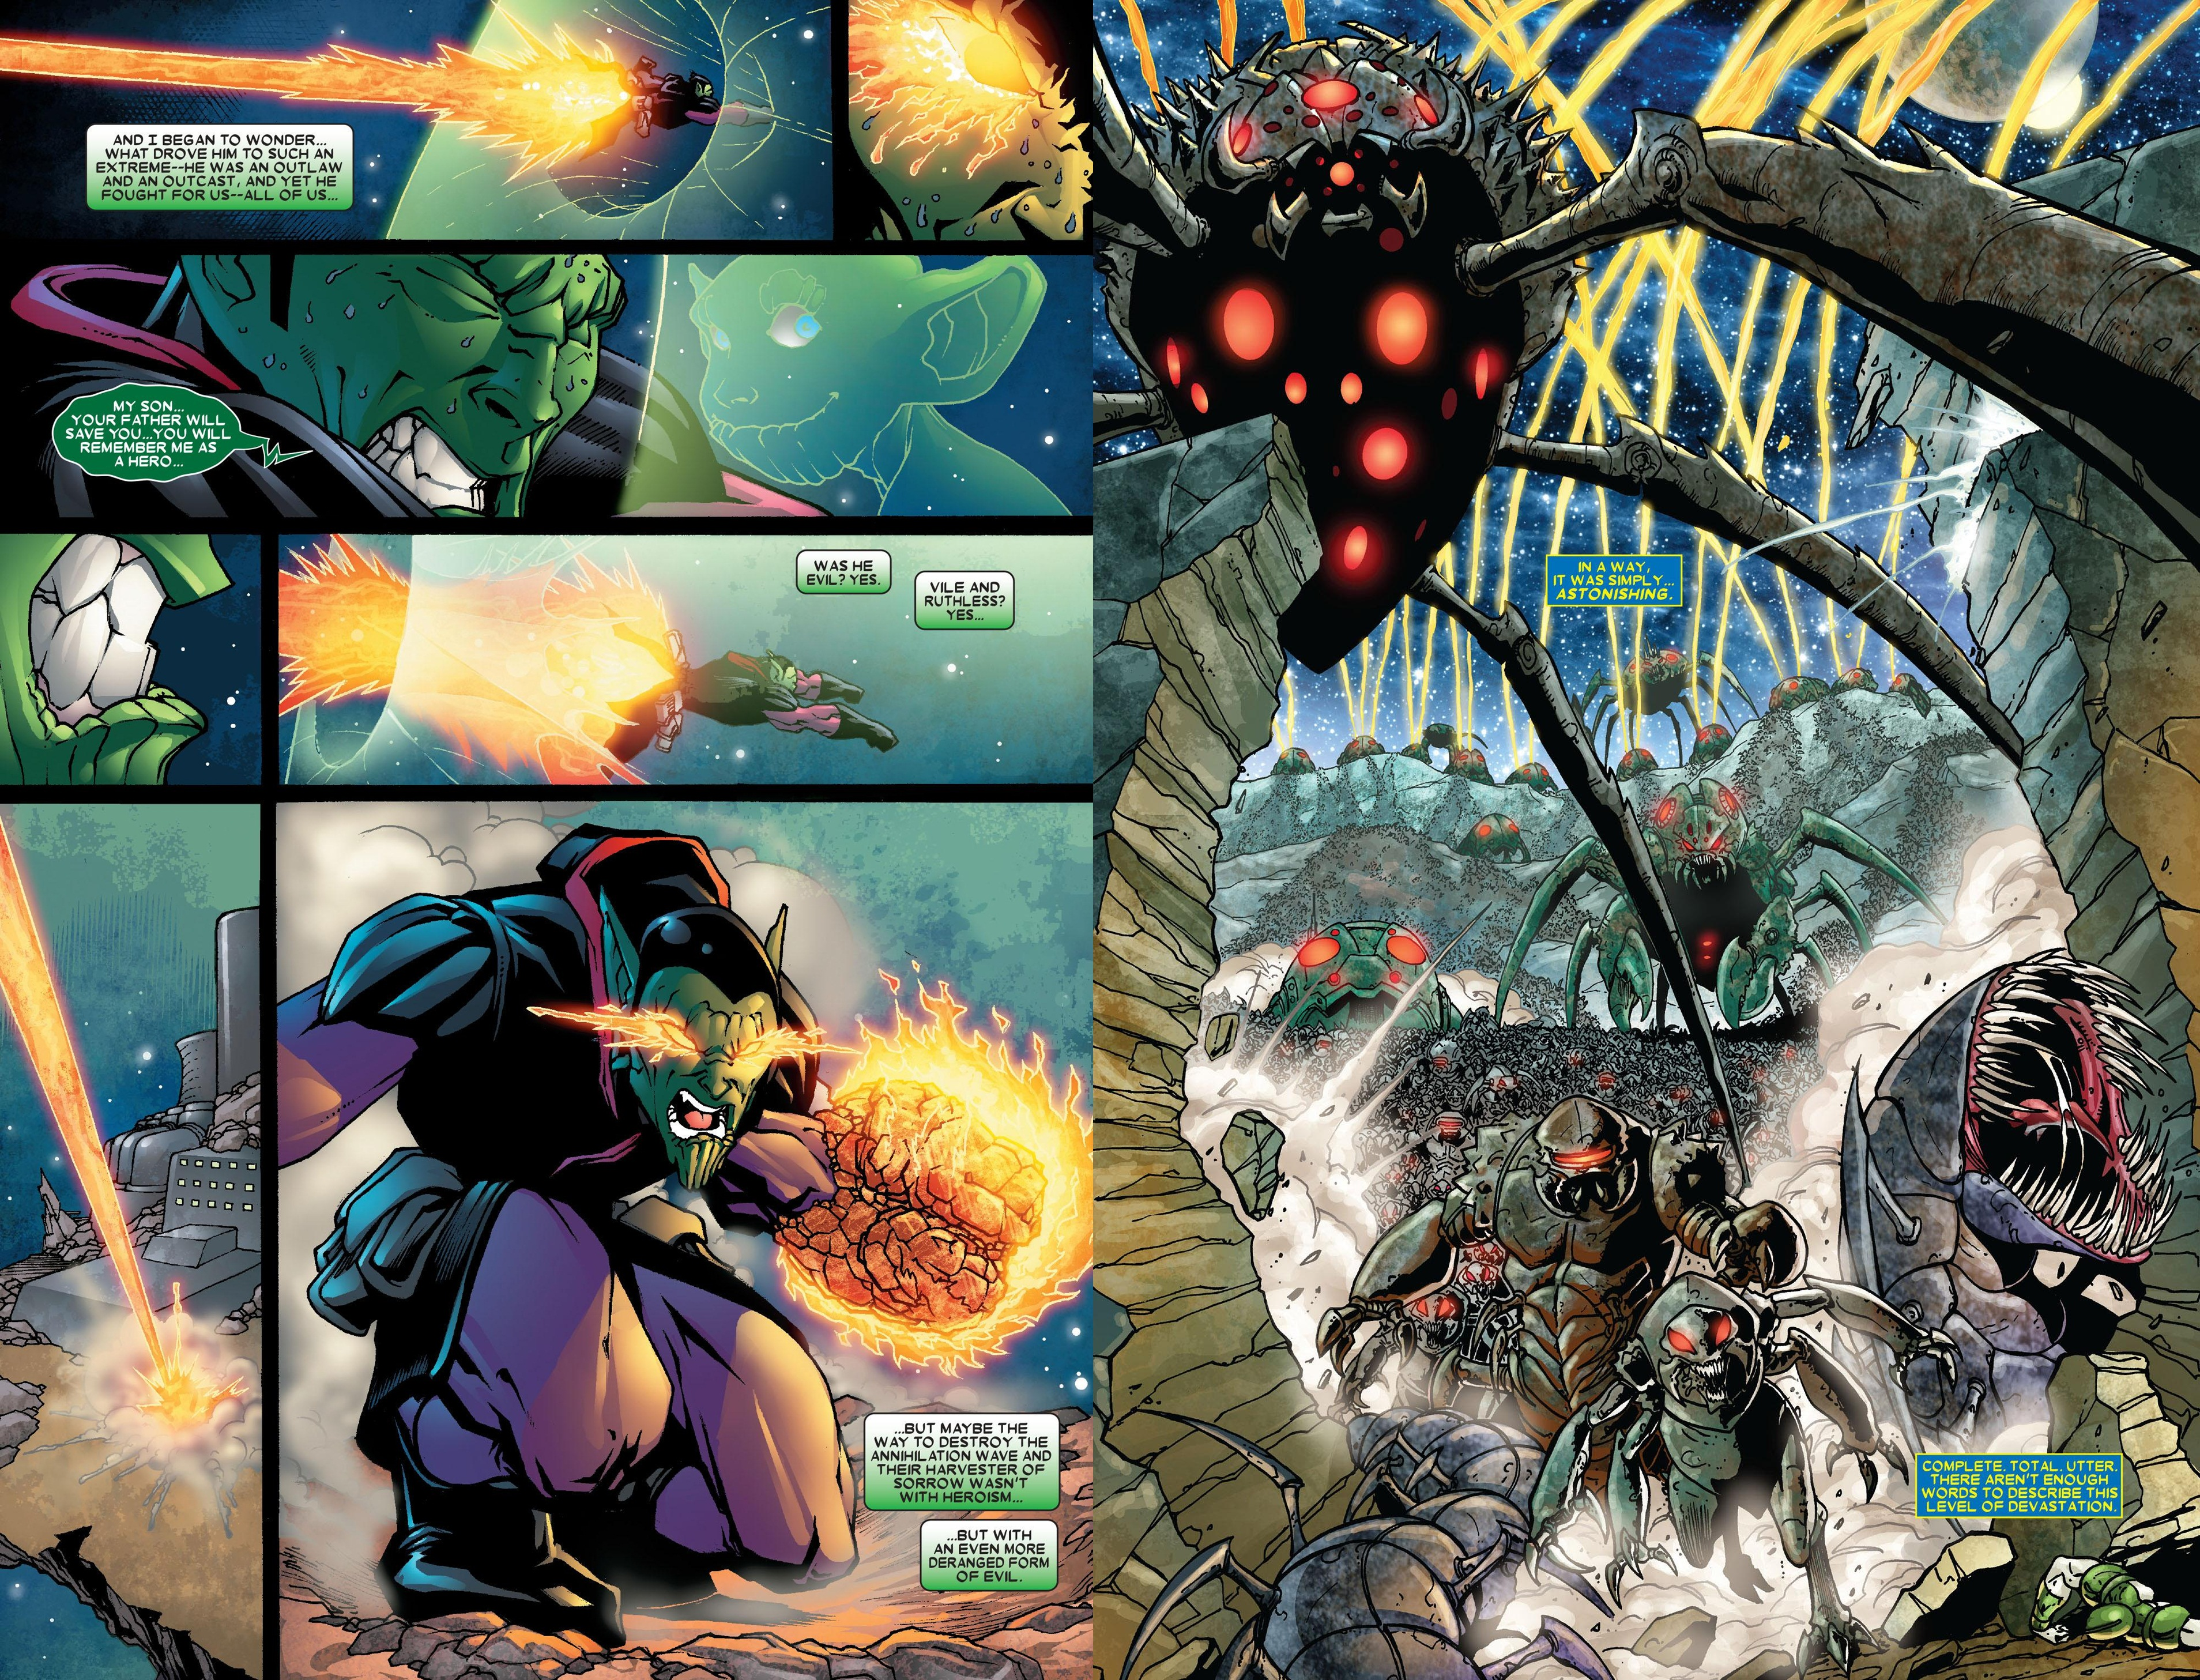 Annihilation The Complete Collection Vol 2 review